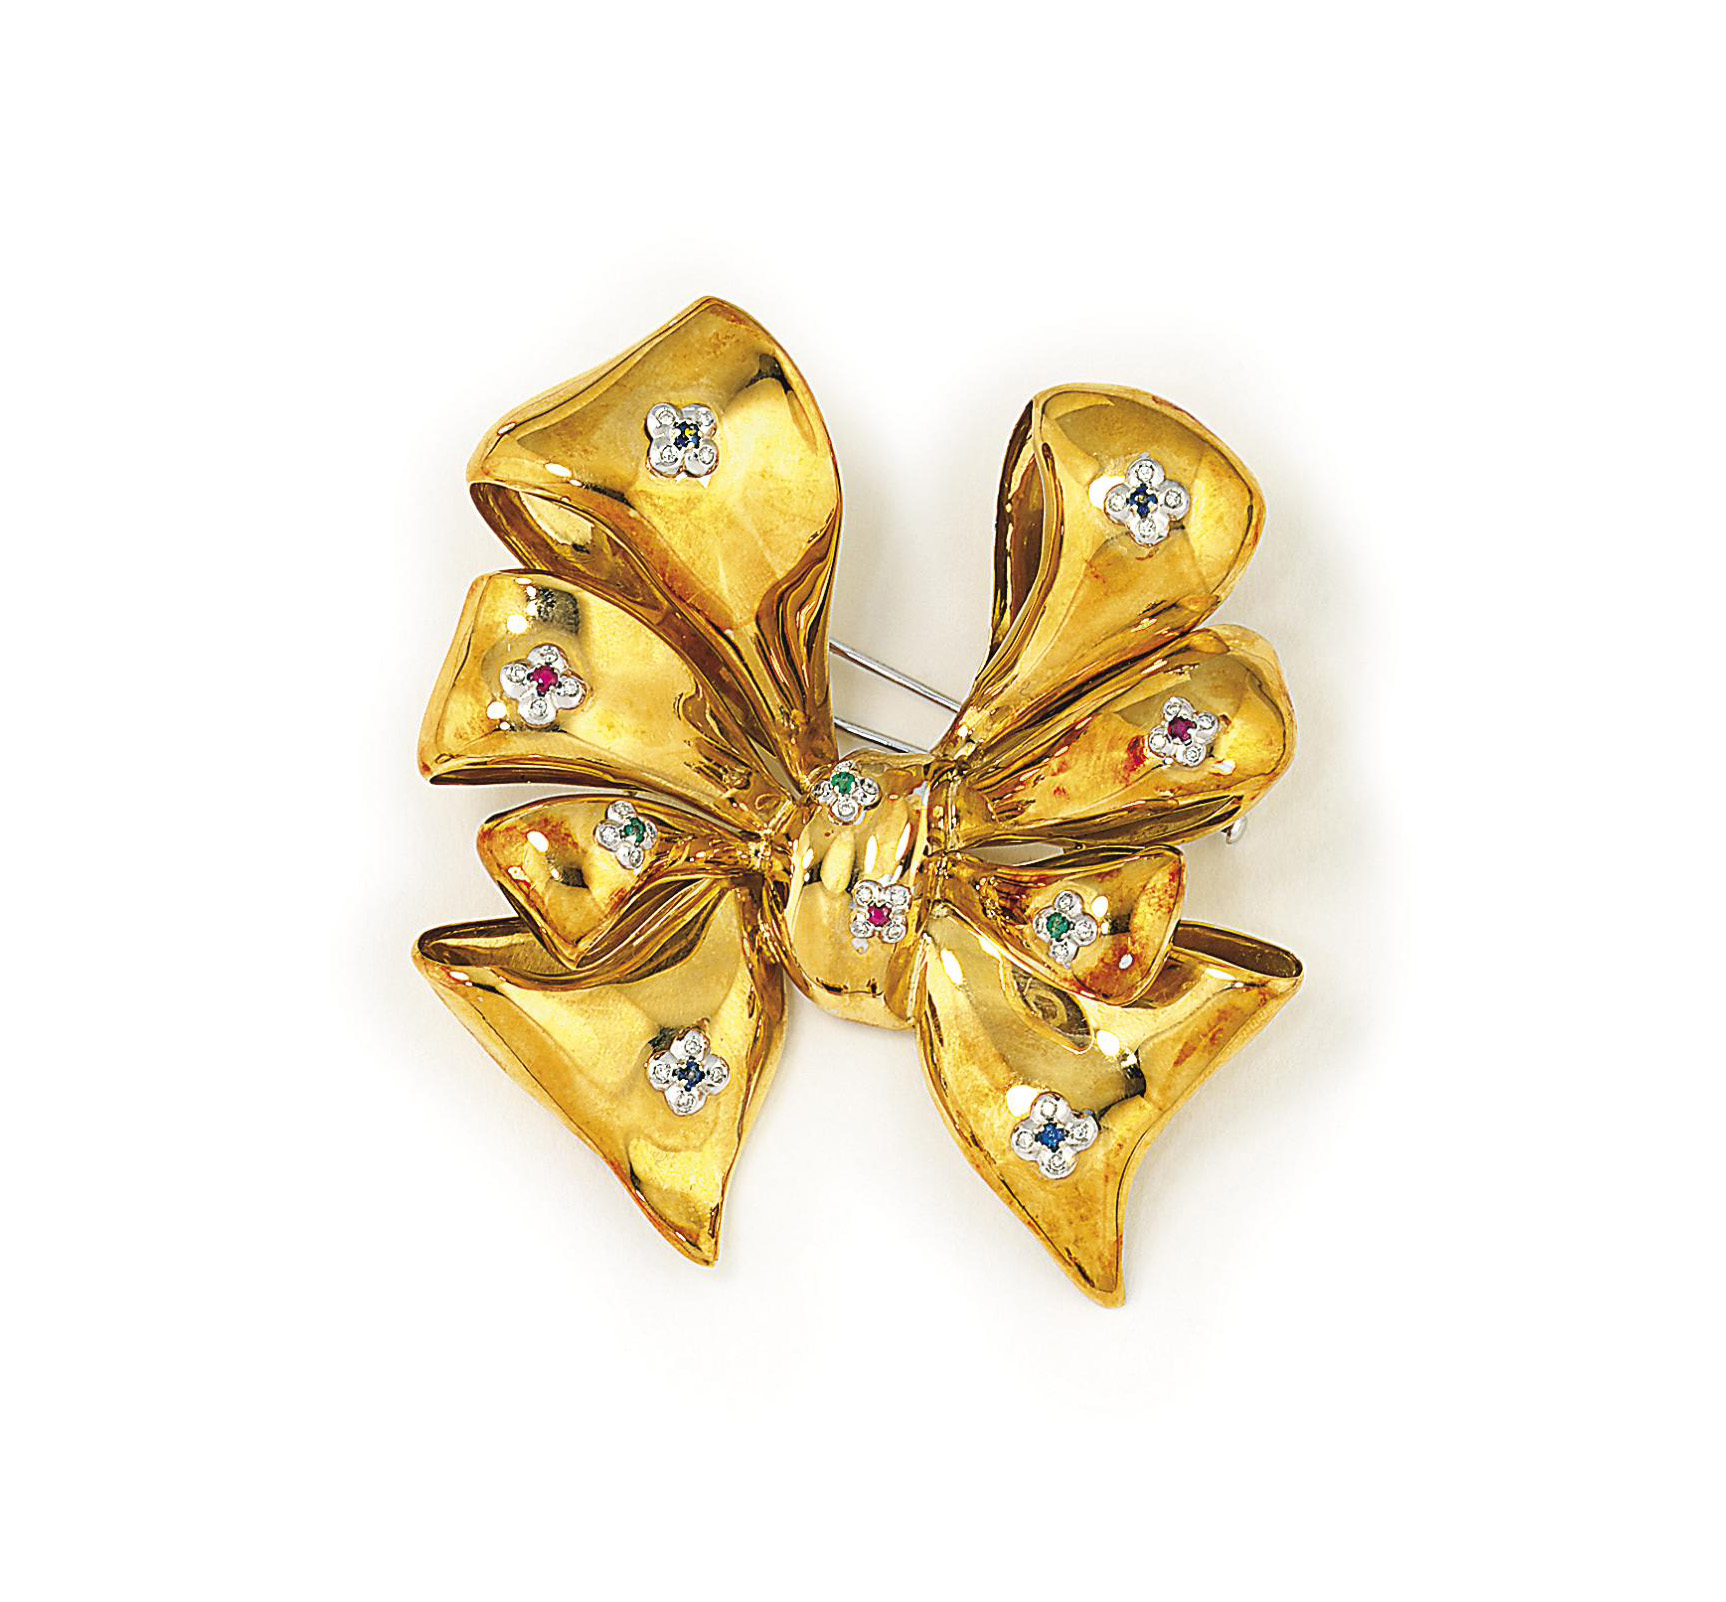 A DIAMOND AND GEM-SET BROOCH